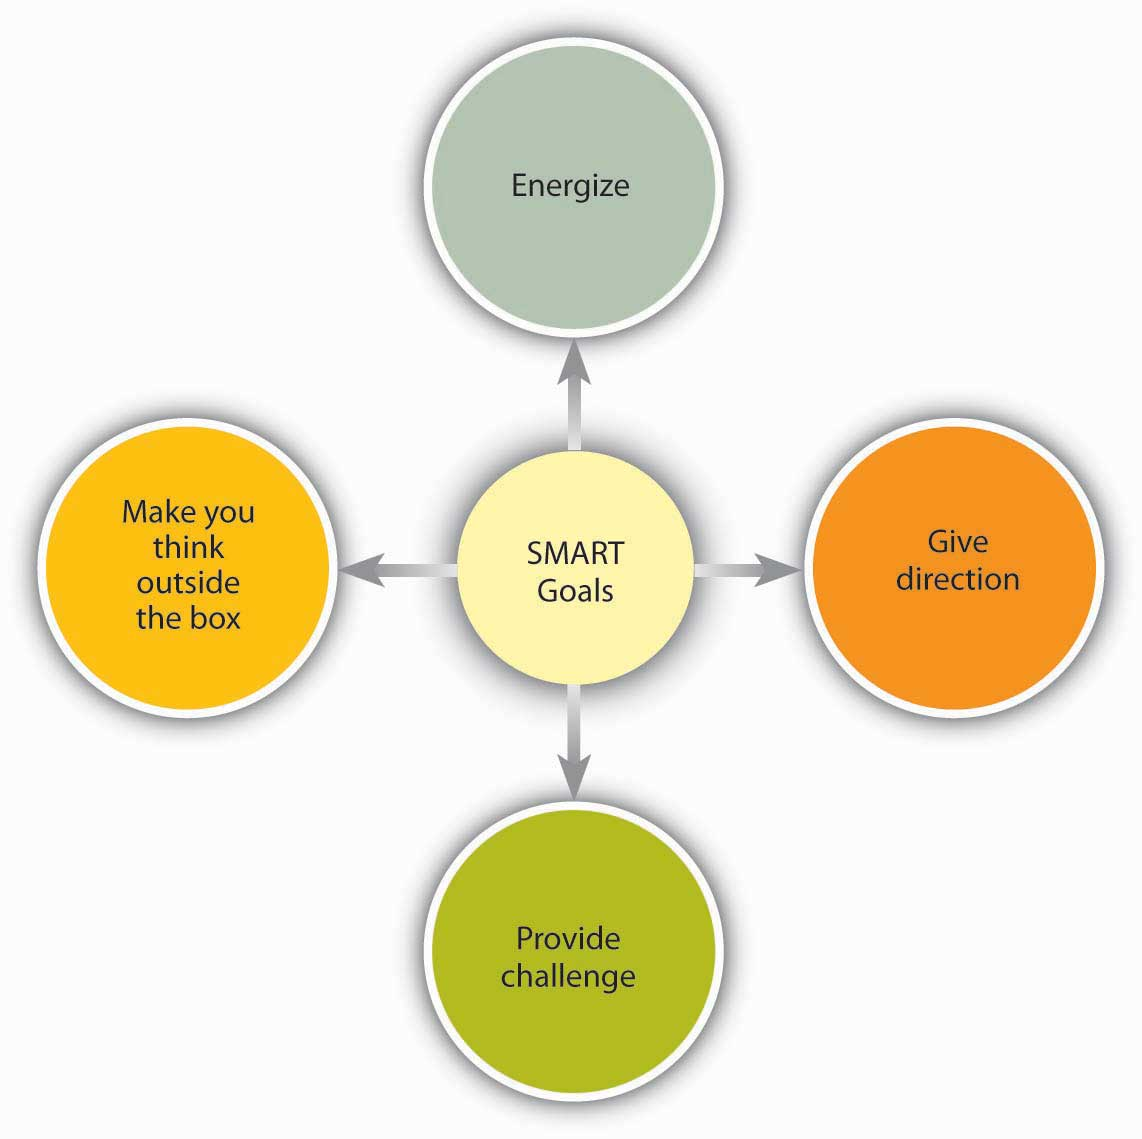 organizational behavior 1 0 flatworld why do smart goals motivate